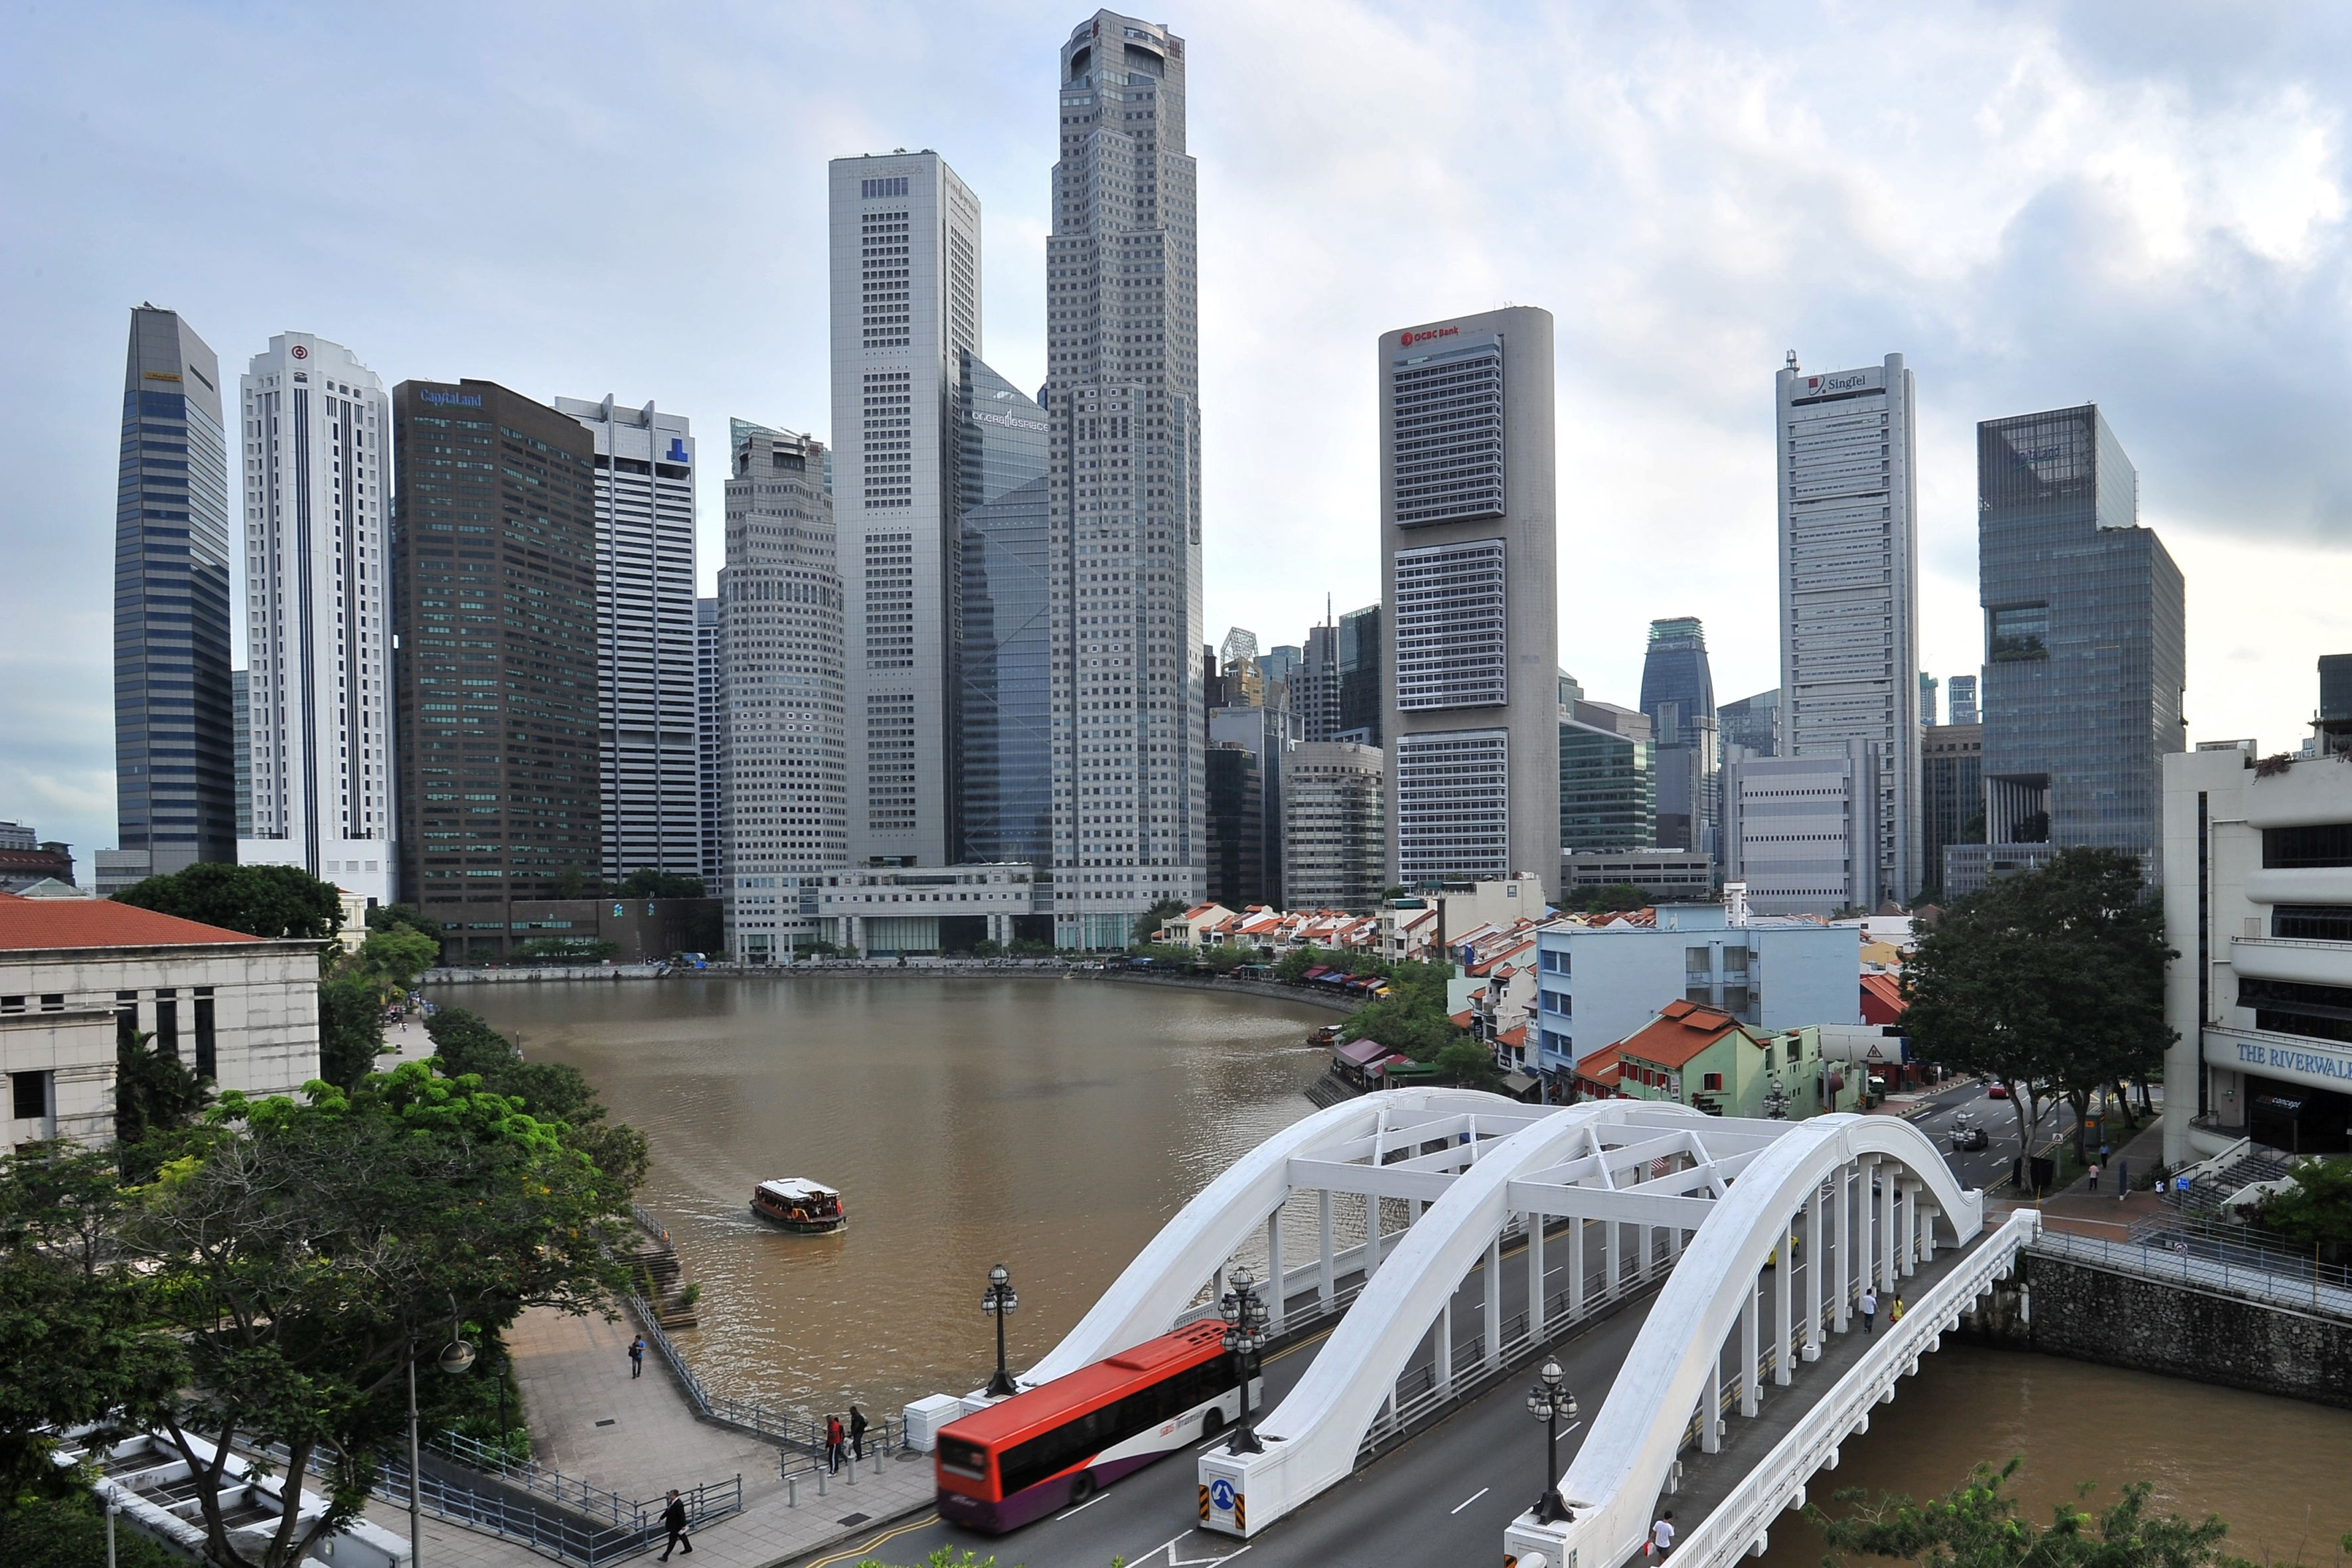 Singapore companies have improved risk transparency: ISCA